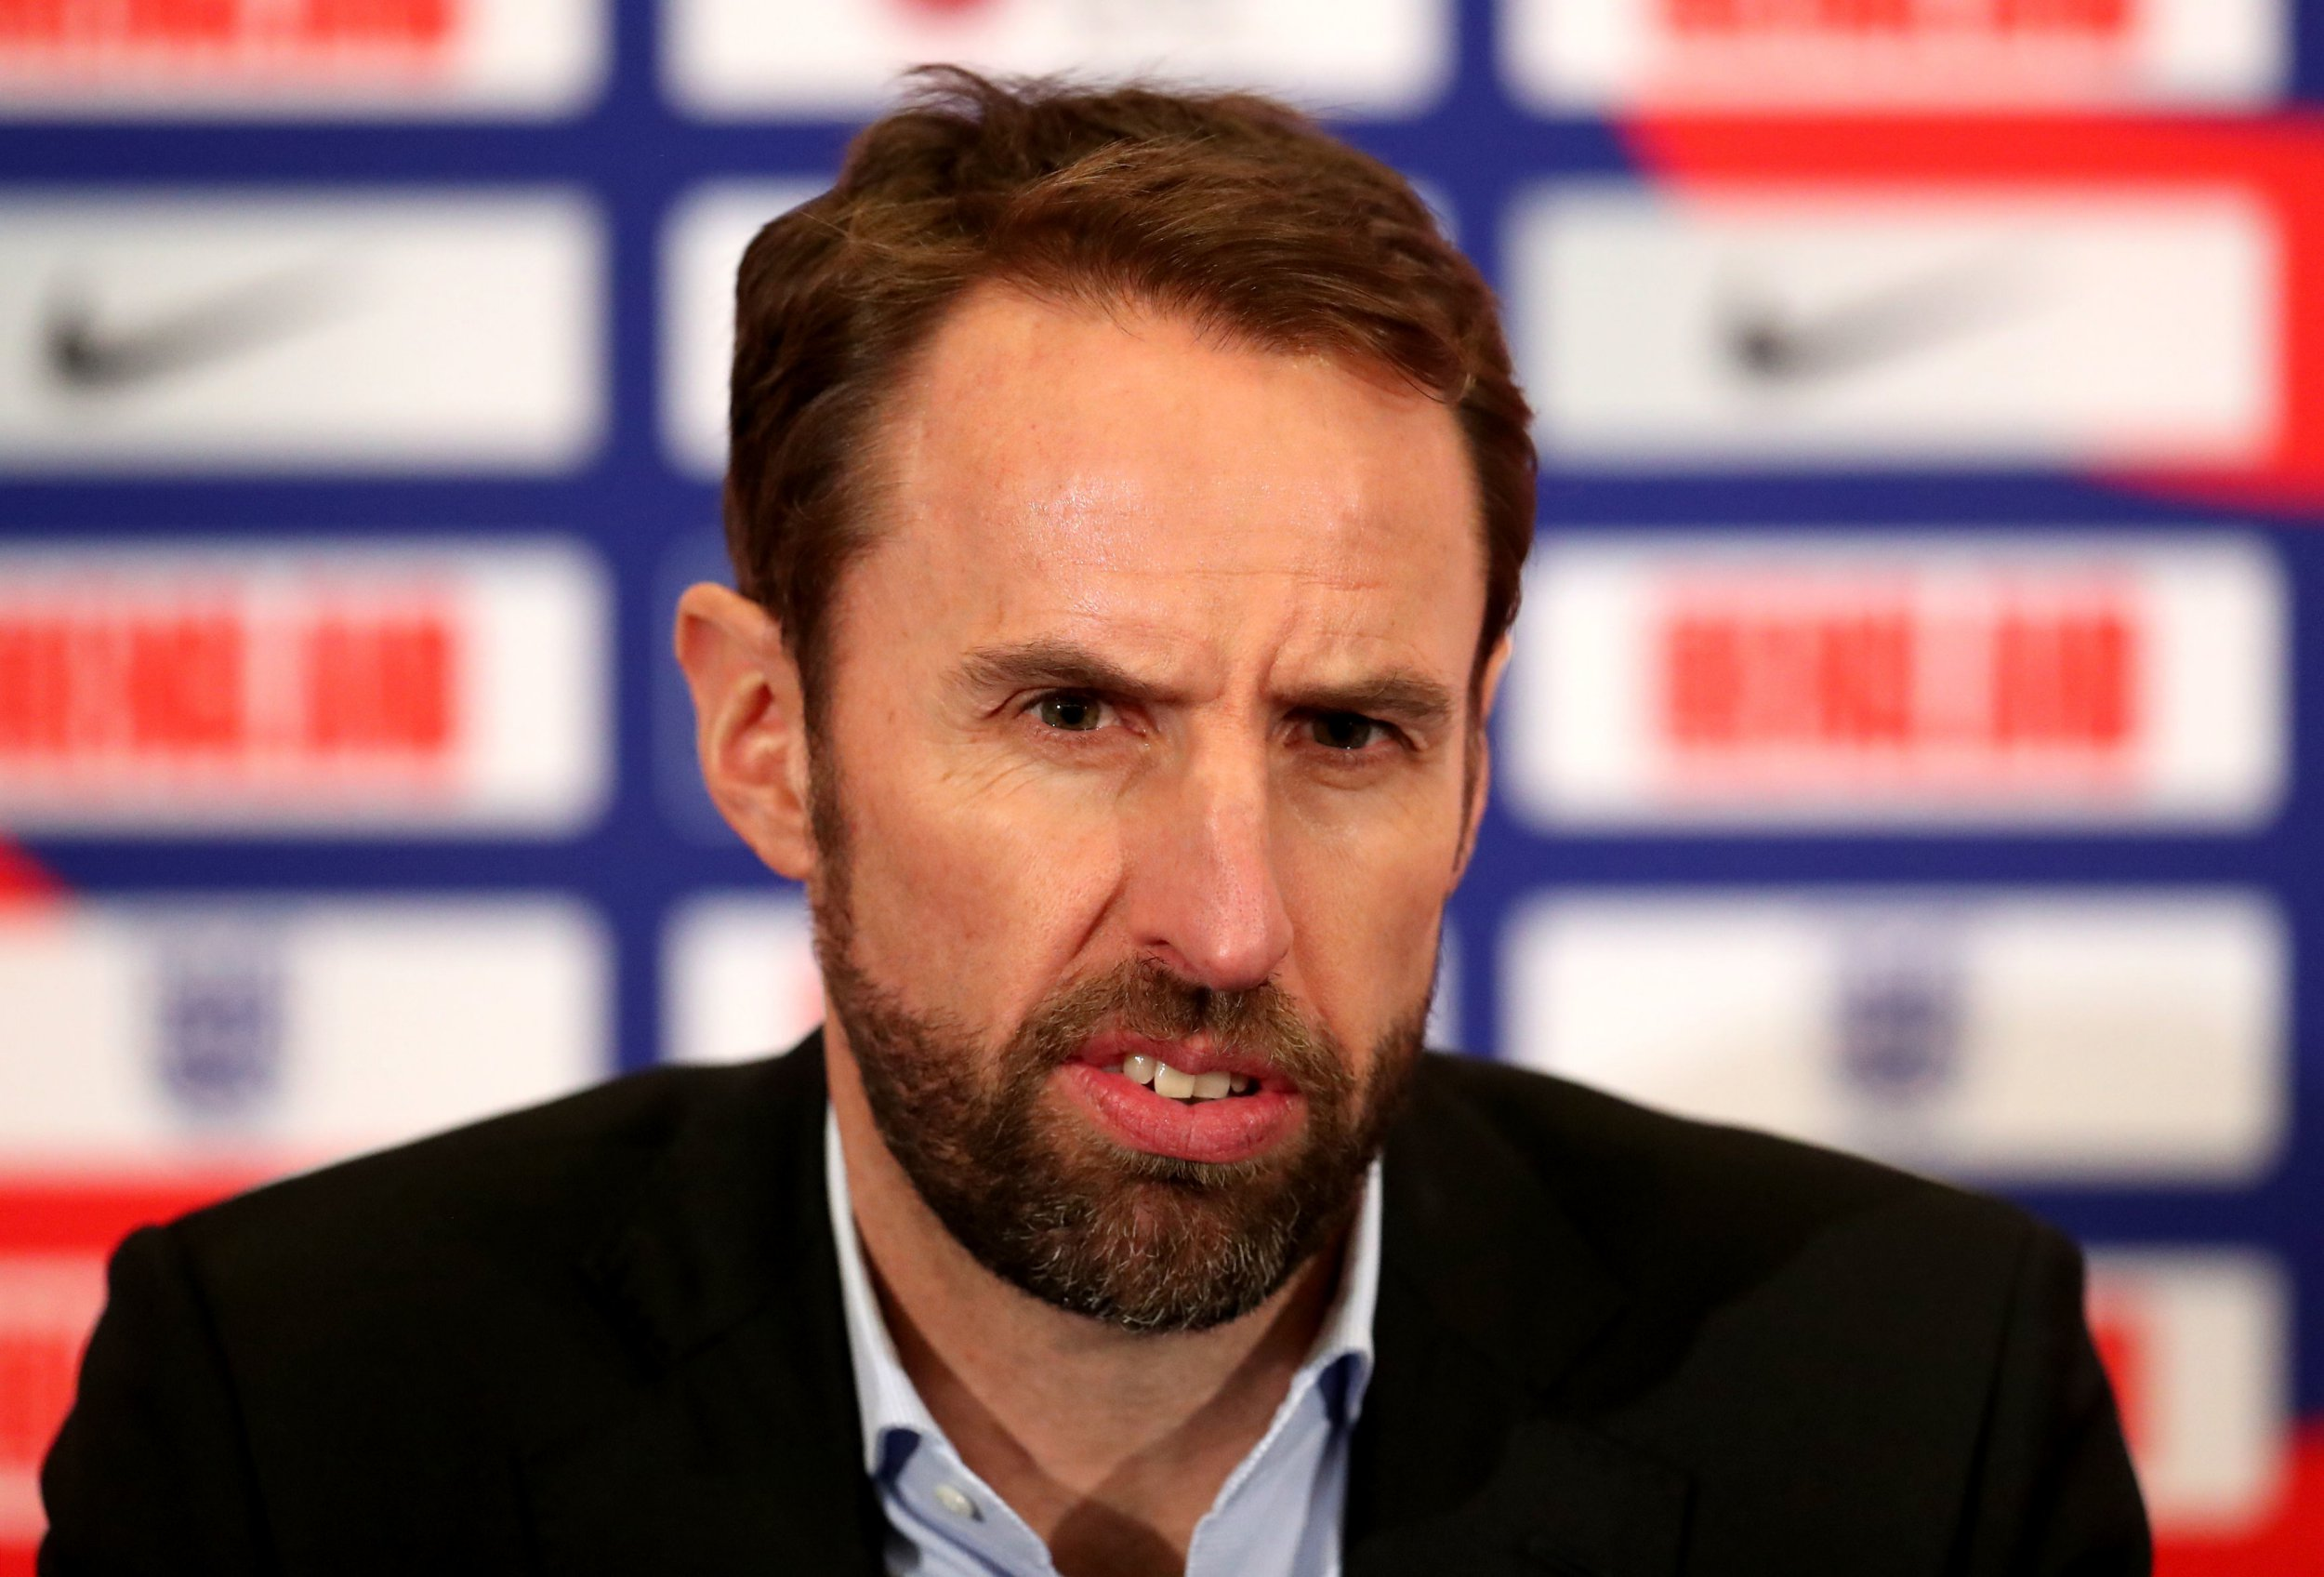 Gareth Southgate during the England Squad Announcement at St George's Park, Burton. PRESS ASSOCIATION Photo. Picture date: Wednesday March 13, 2019. See PA story SOCCER England. Photo credit should read: Bradley Collyer/PA Wire. RESTRICTIONS: Use subject to FA restrictions. Editorial use only. Commercial use only with prior written consent of the FA. No editing except cropping.